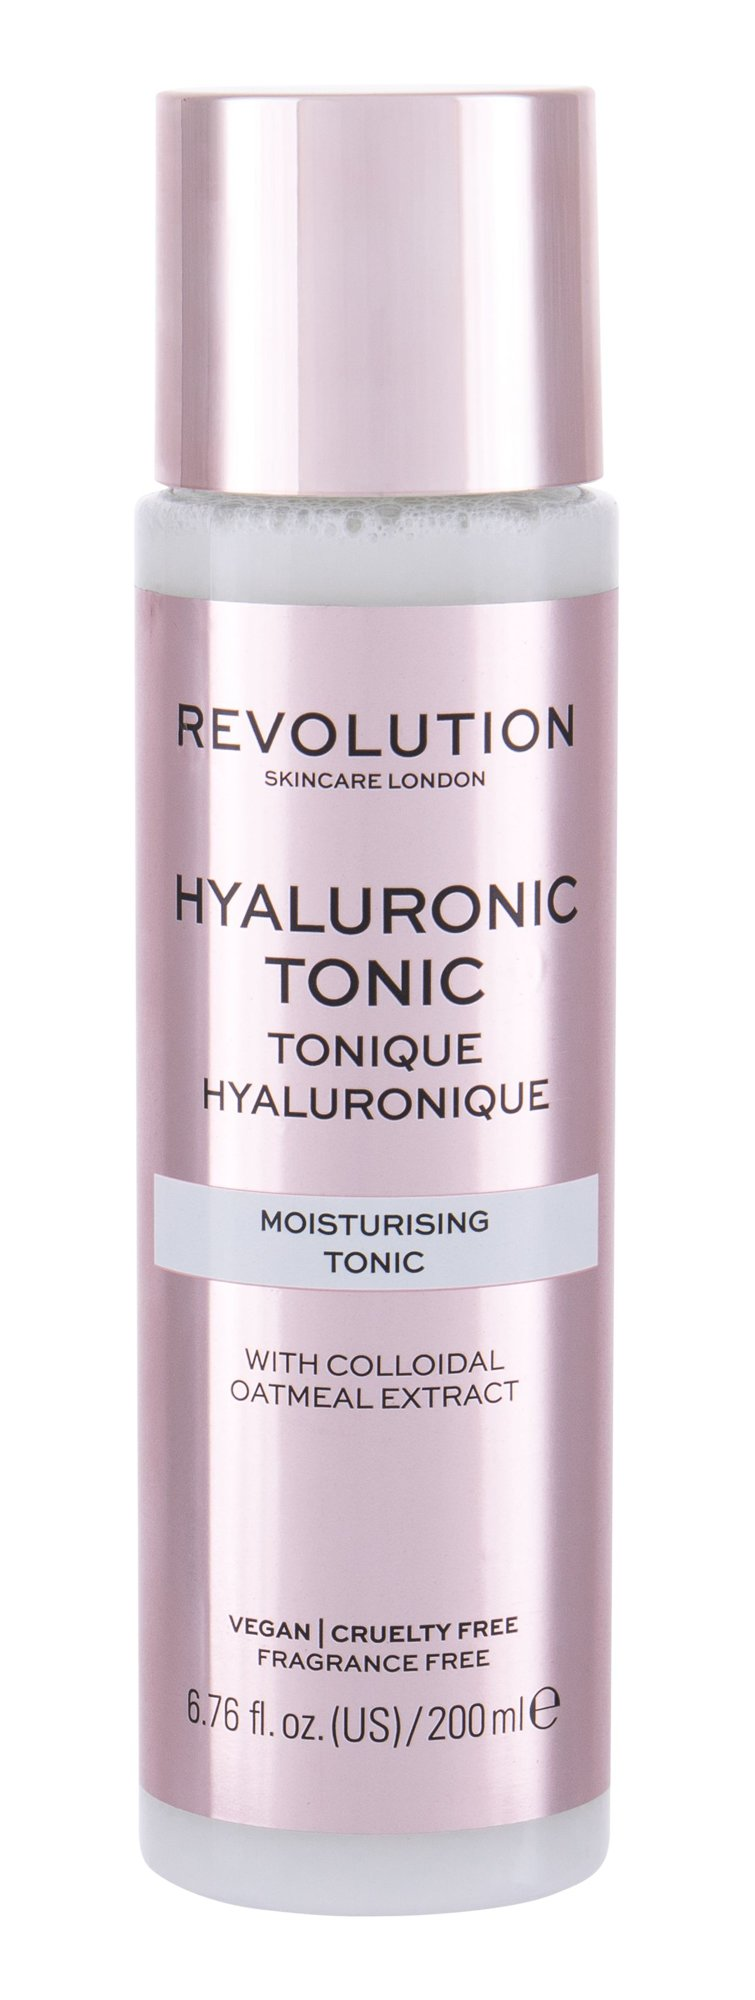 Makeup Revolution London Skincare Hyaluronic Tonic, arcvíz a sprej 200ml - Moisturising